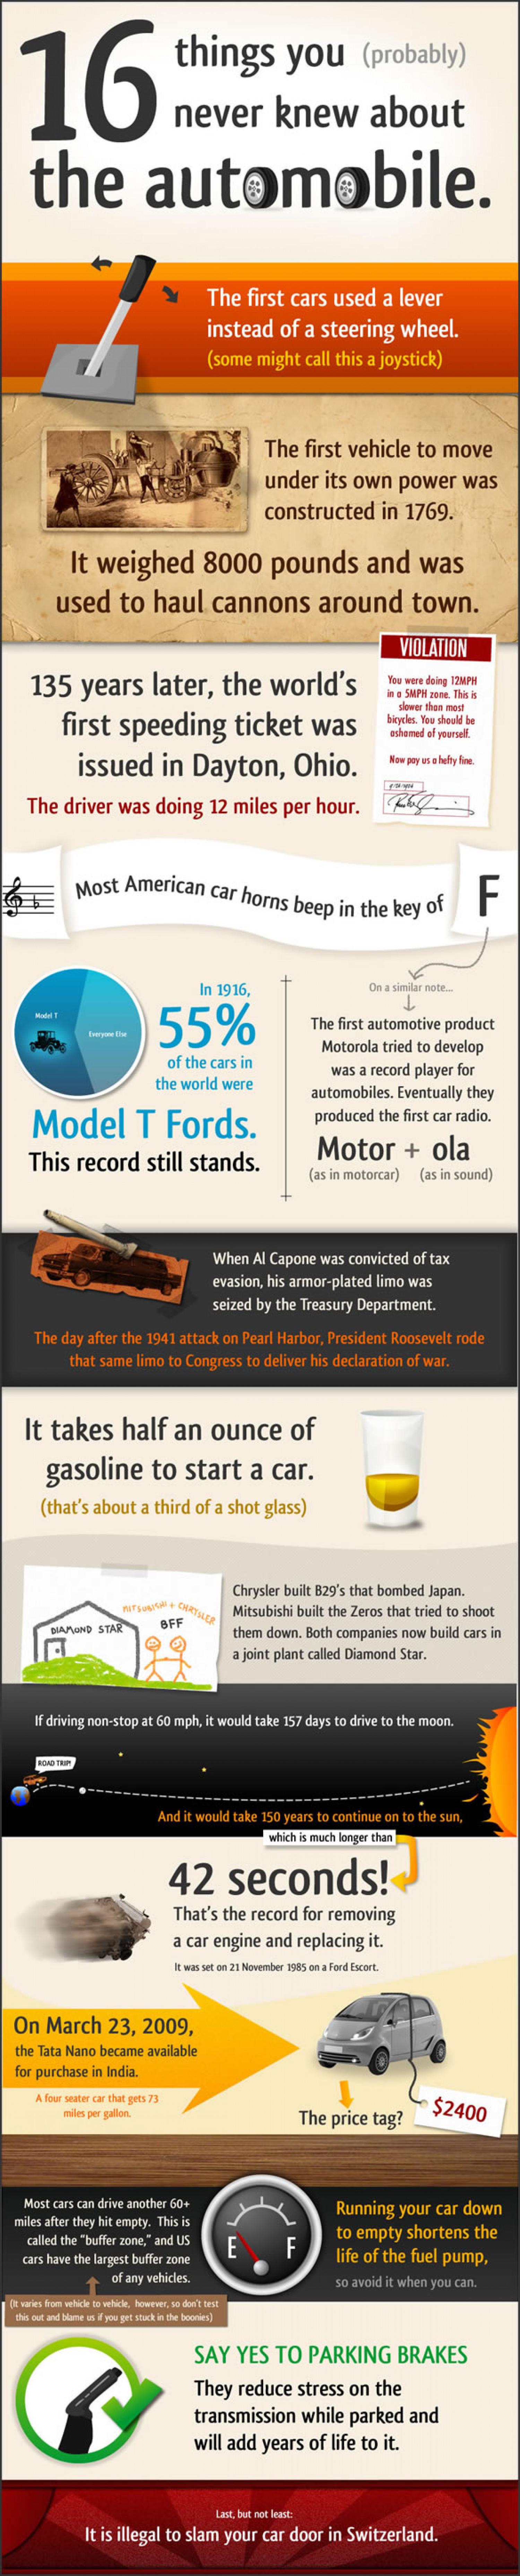 16 Things You Never Knew About The Automobile Infographic